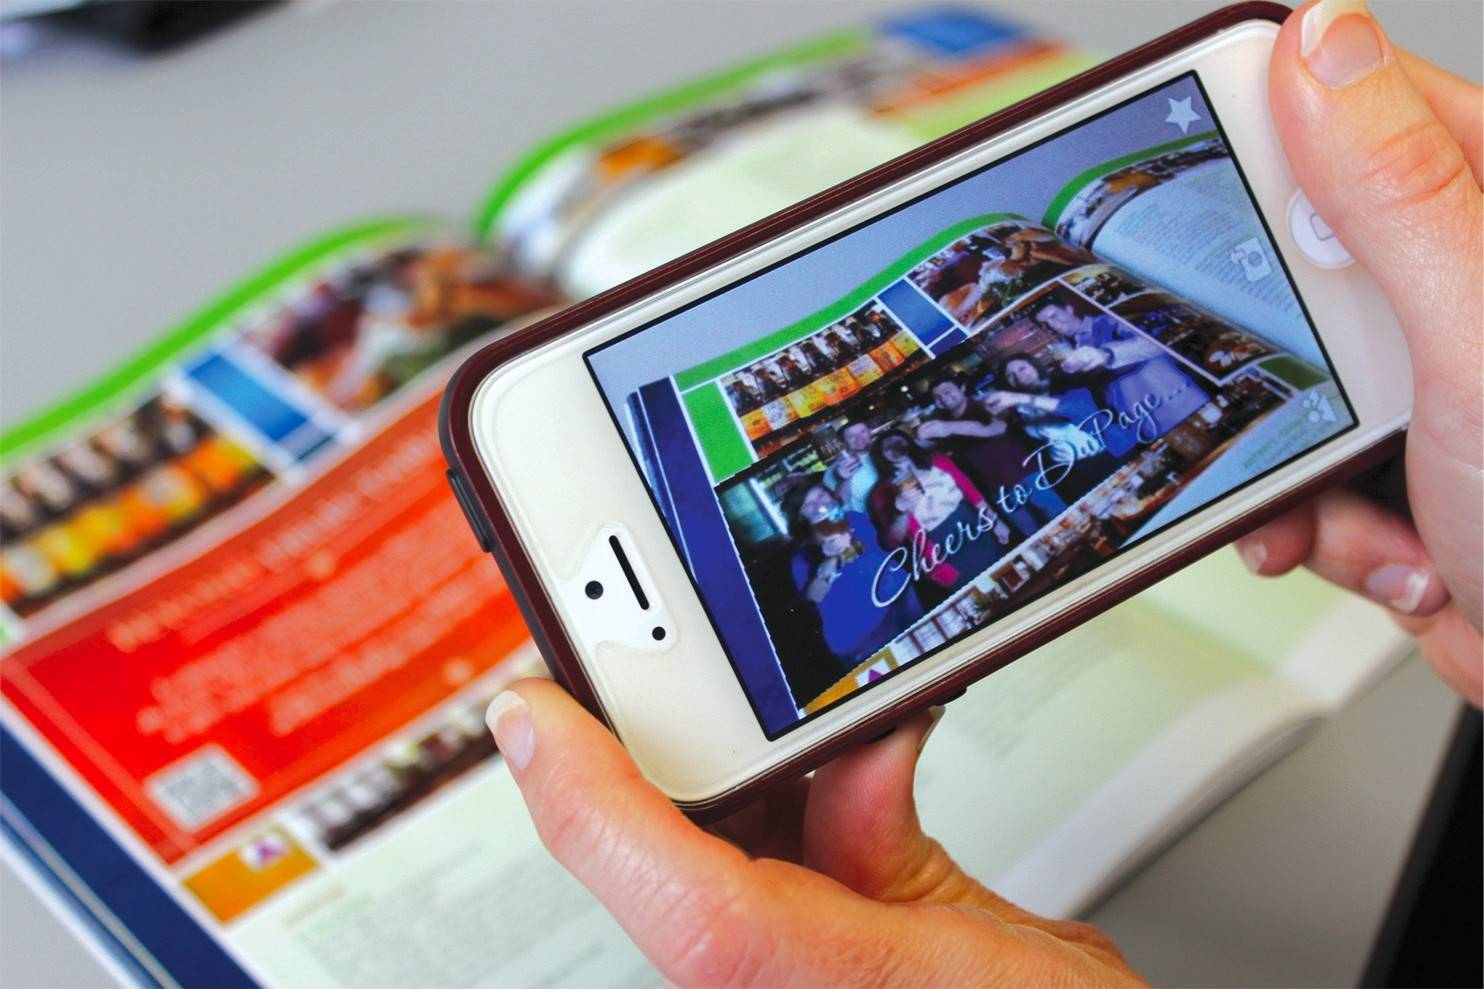 A video plays on a smartphone while the magazine is on the desk. You can see where the video plays over the orange area on the printed guide, while the photos of bottles and other images remain idle.